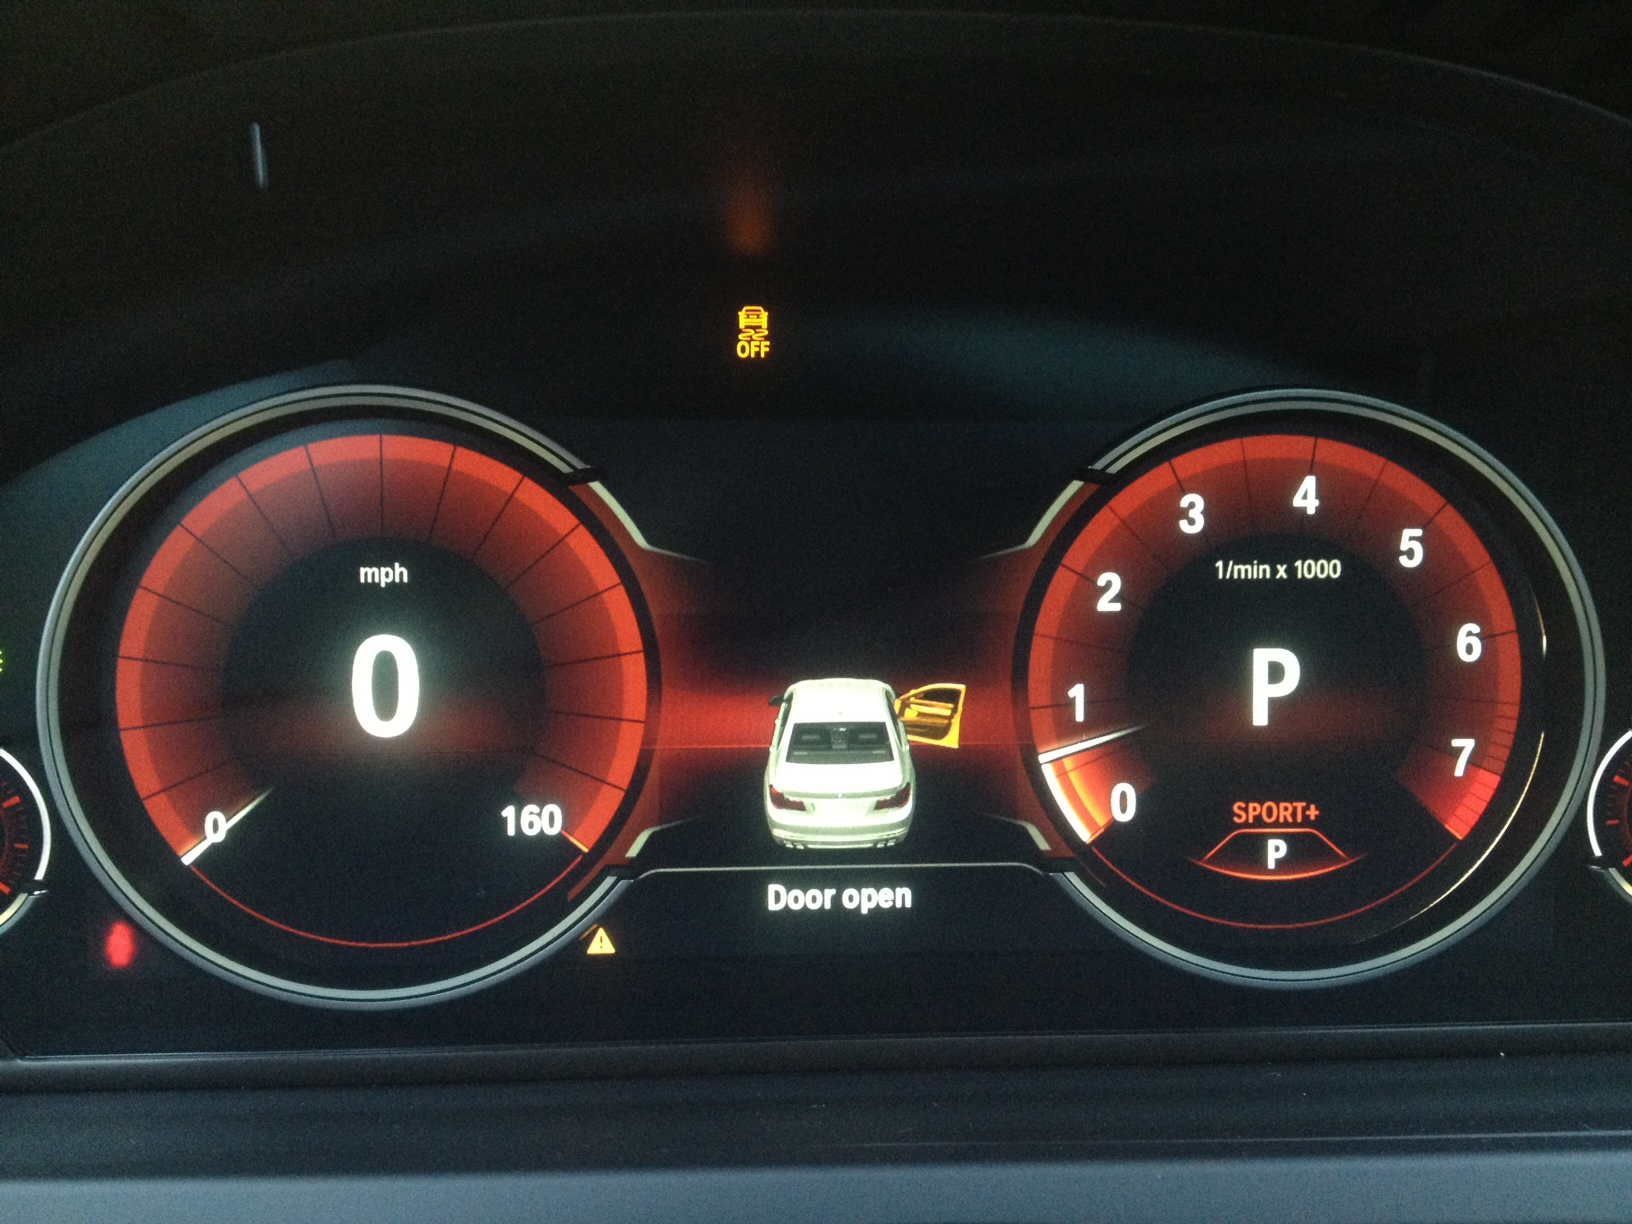 E46 replace boring cluster with M cluster - Printable Version